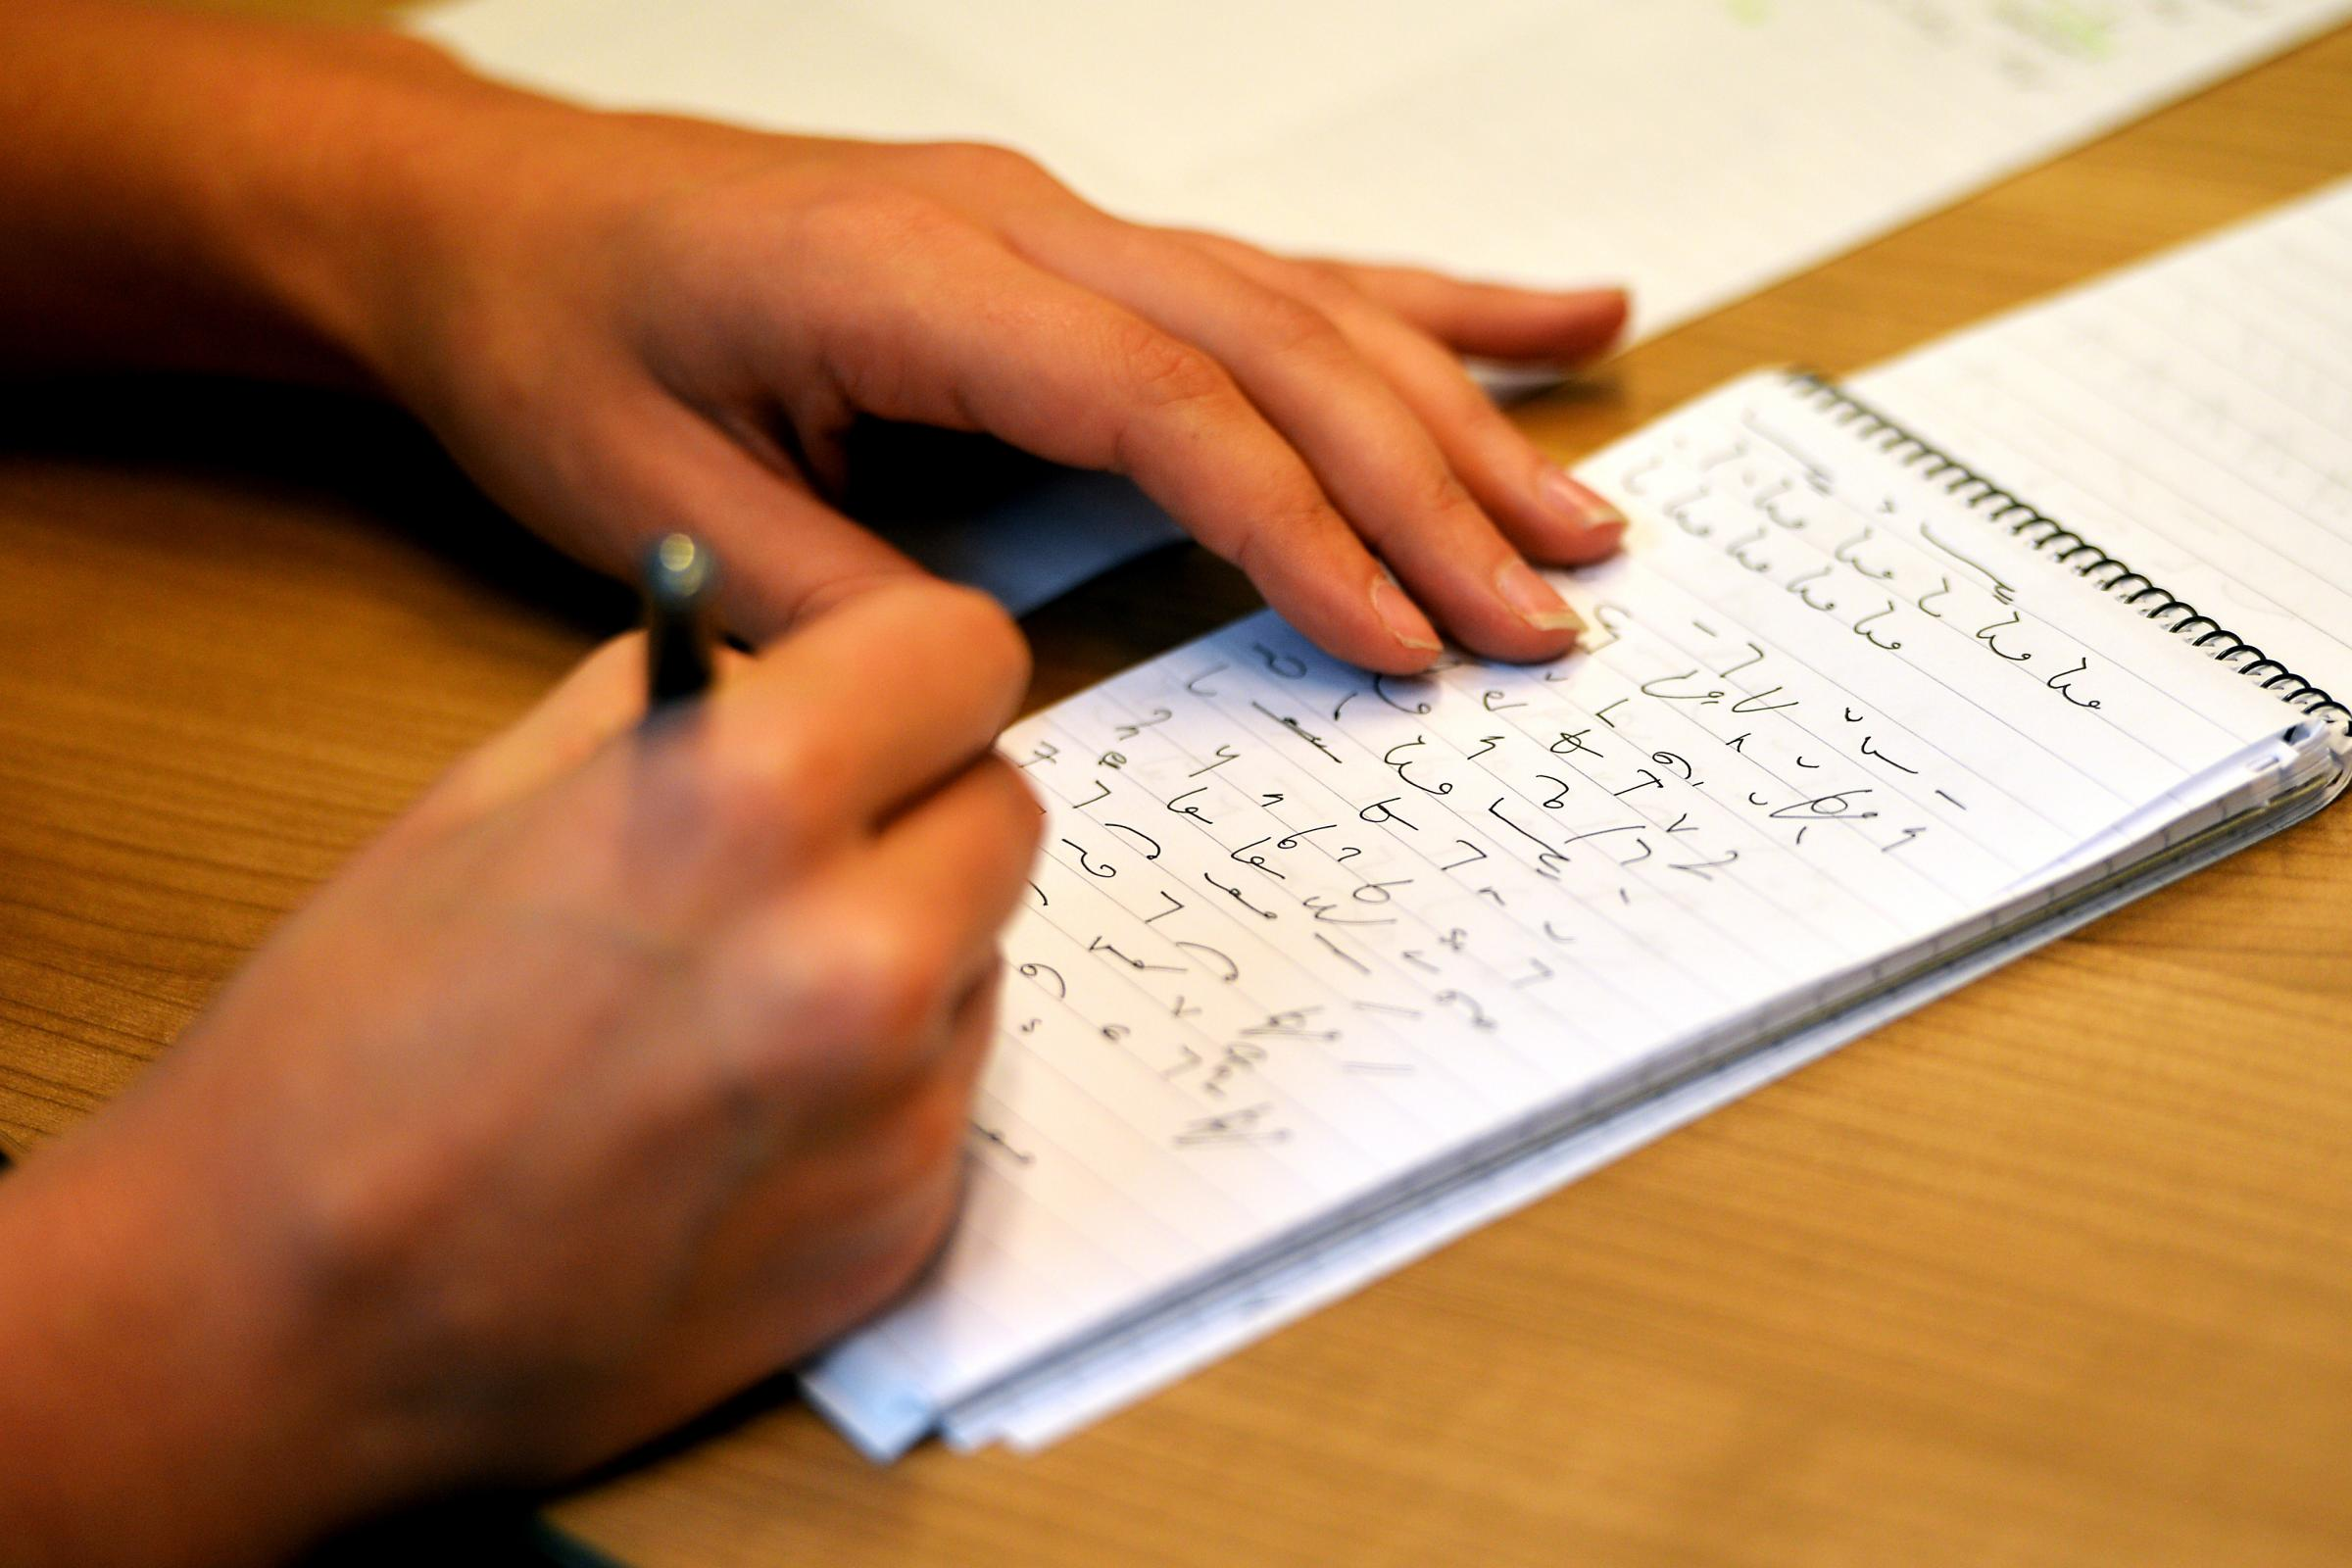 A journalist using shorthand